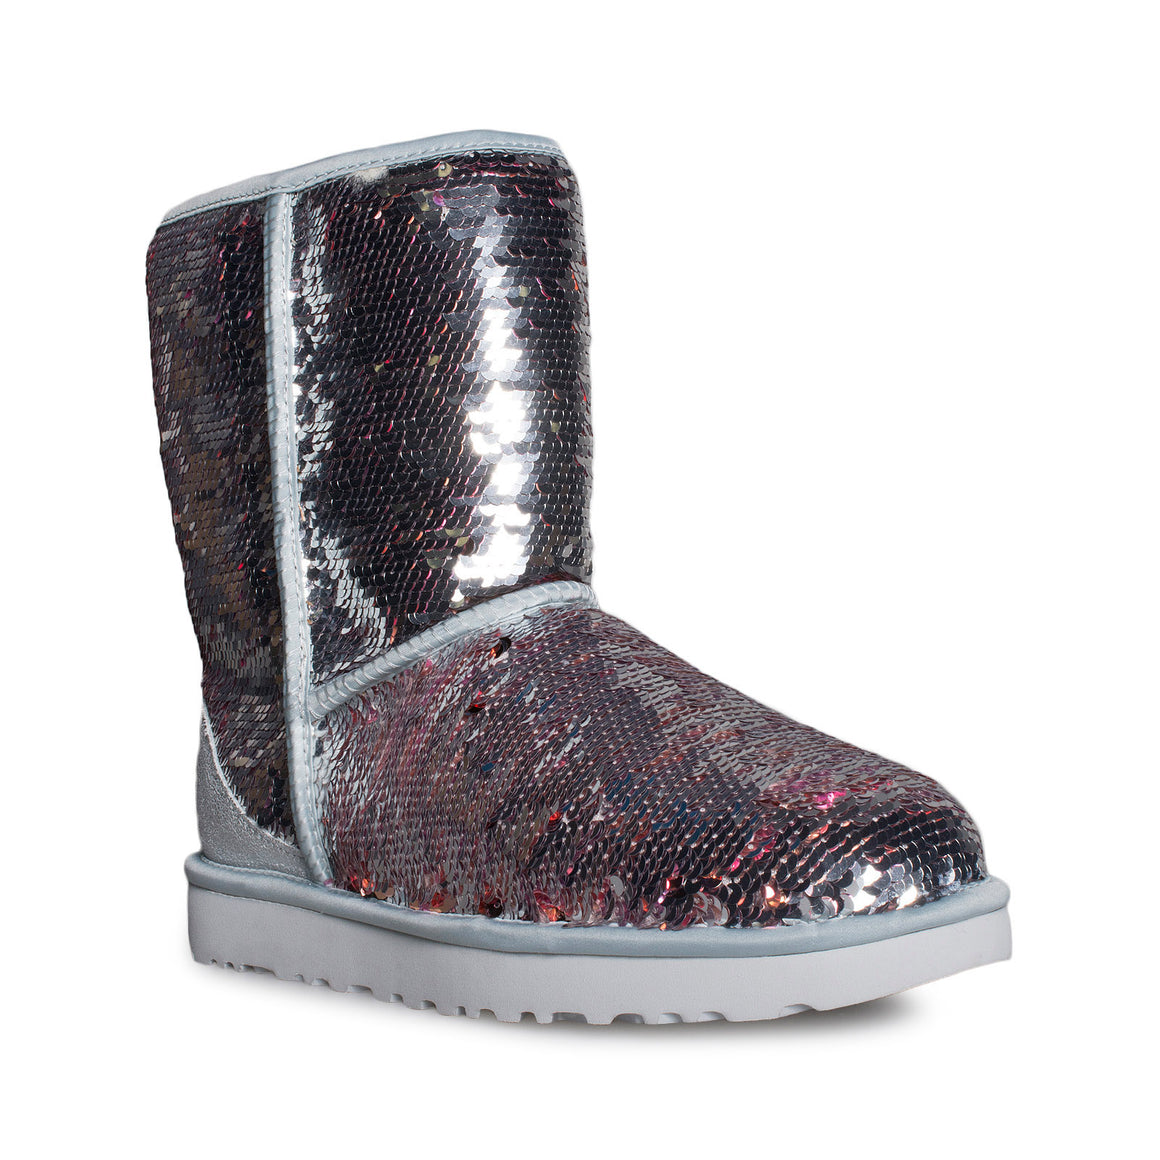 UGG Classic Short Sequin Silver Boots - Women's